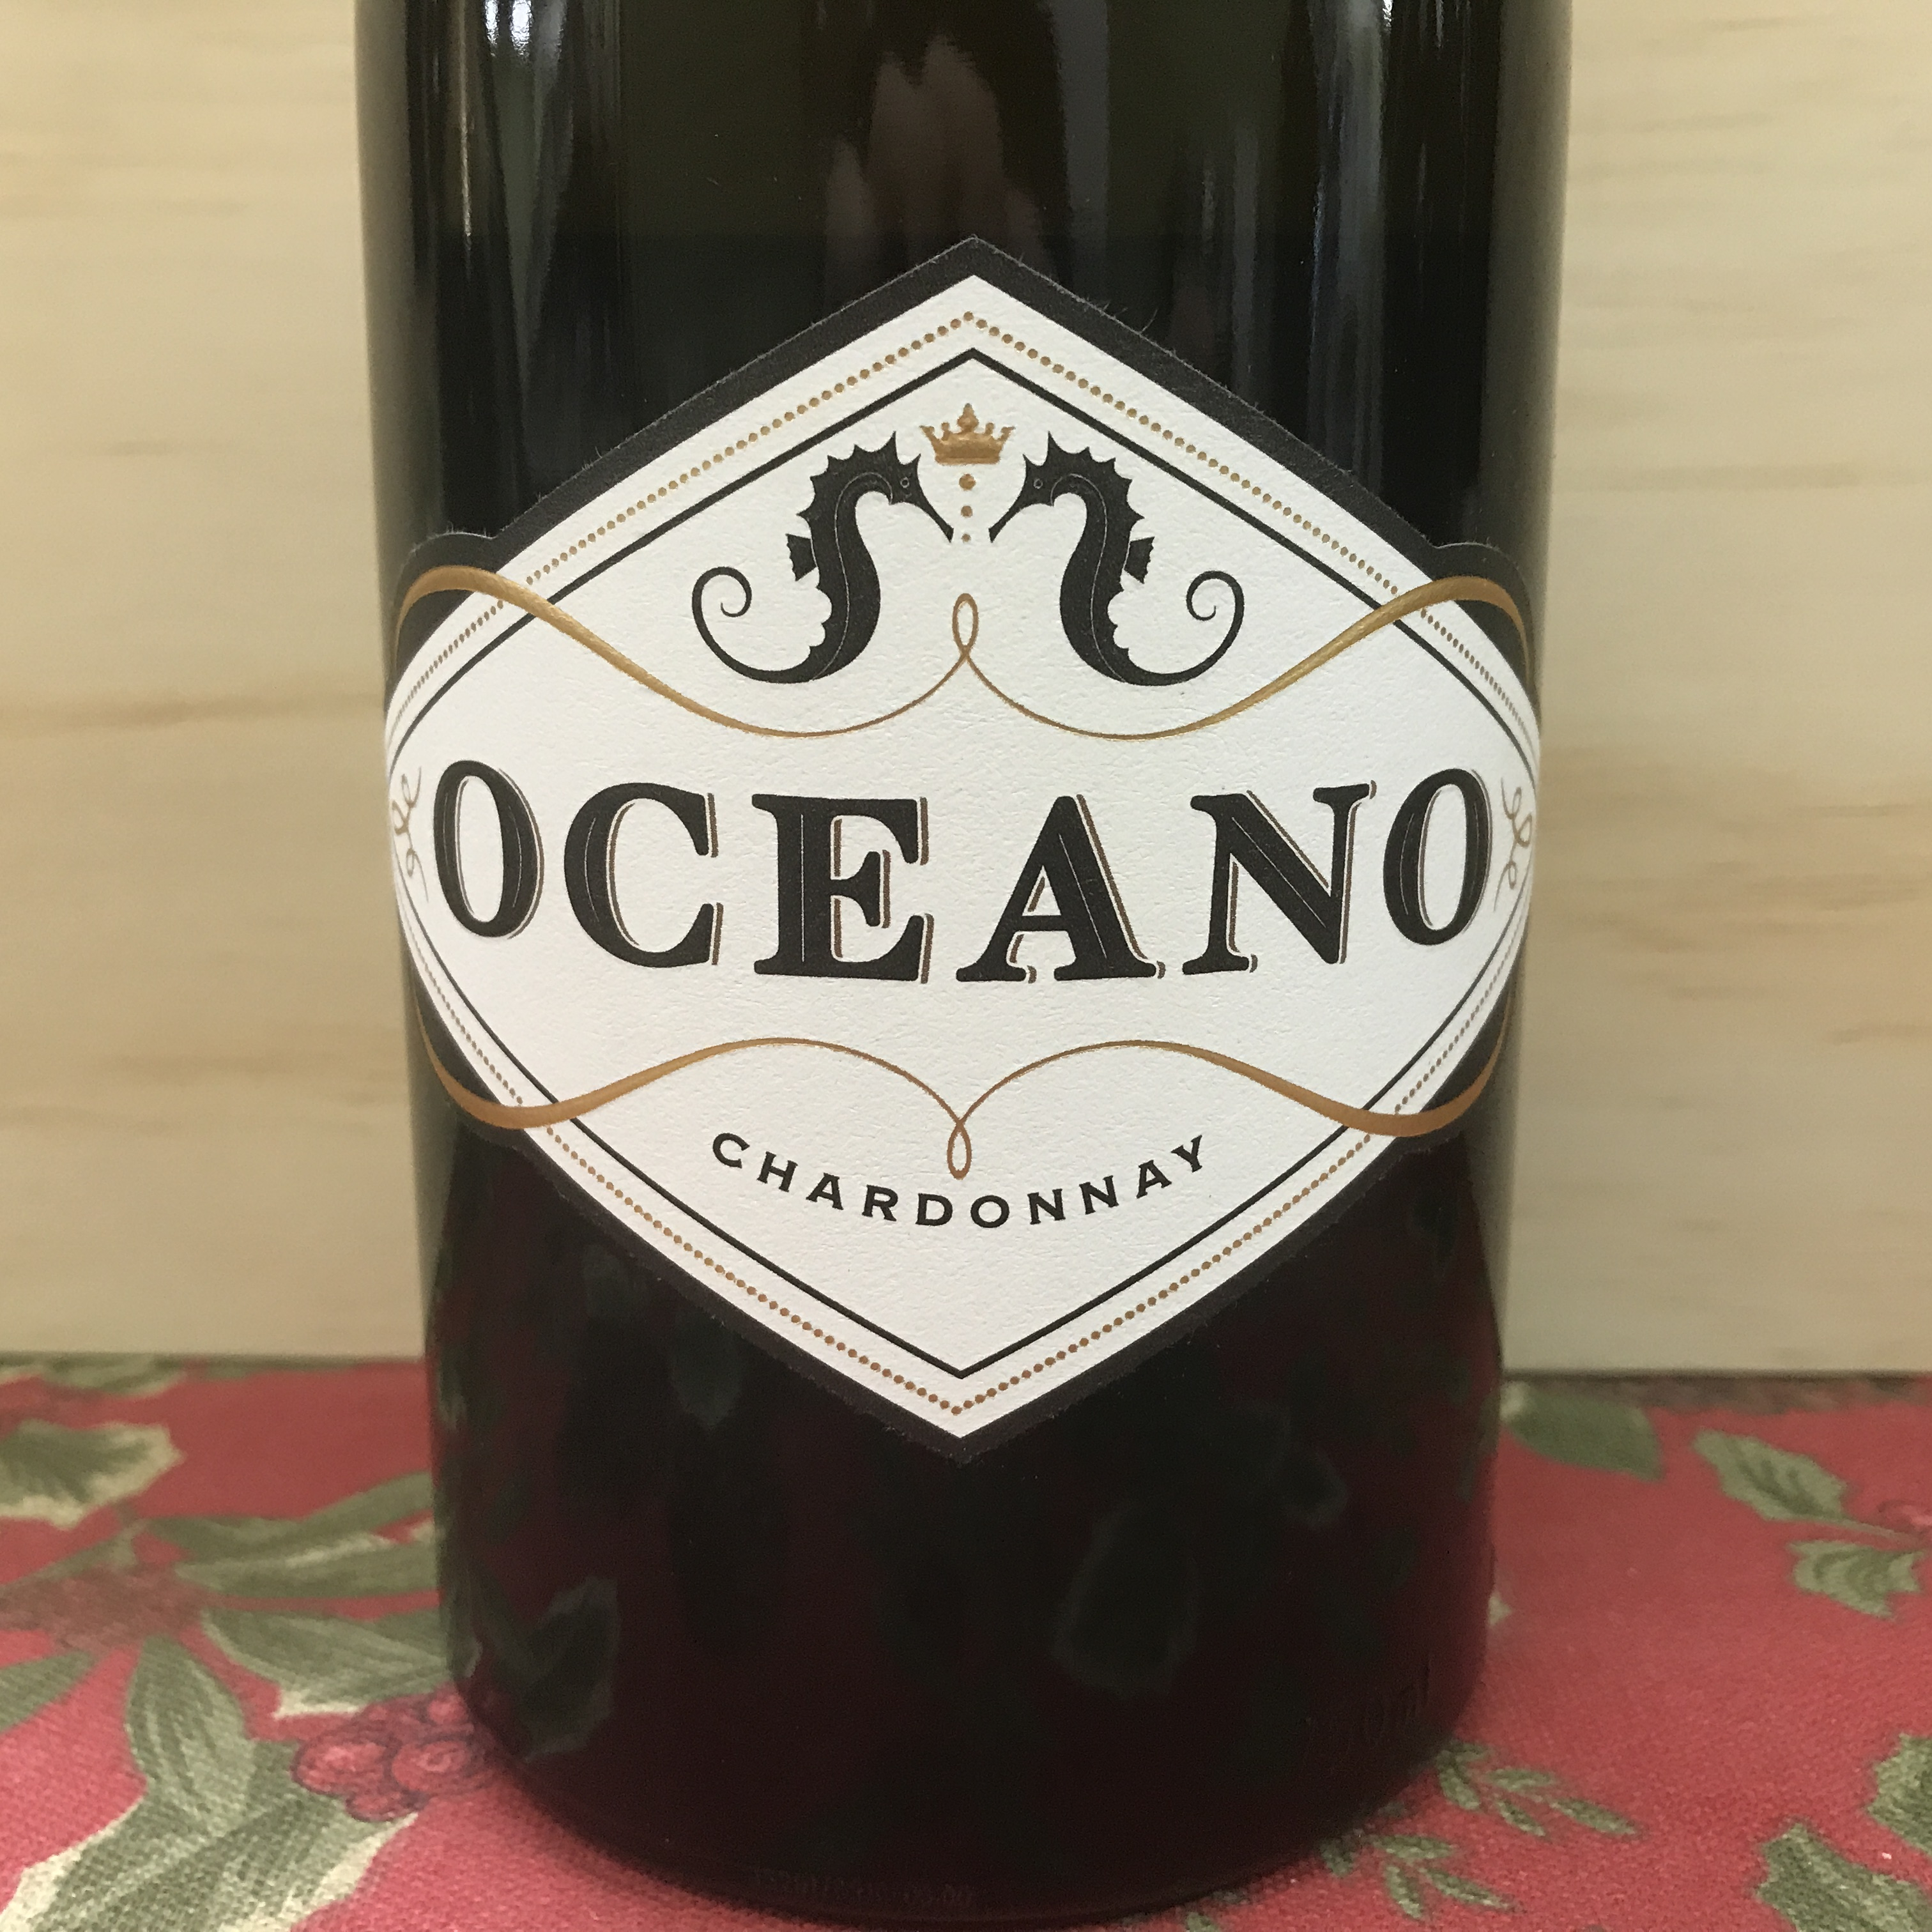 Oceano Chardonnay Spanish Springs Vineyard 2017